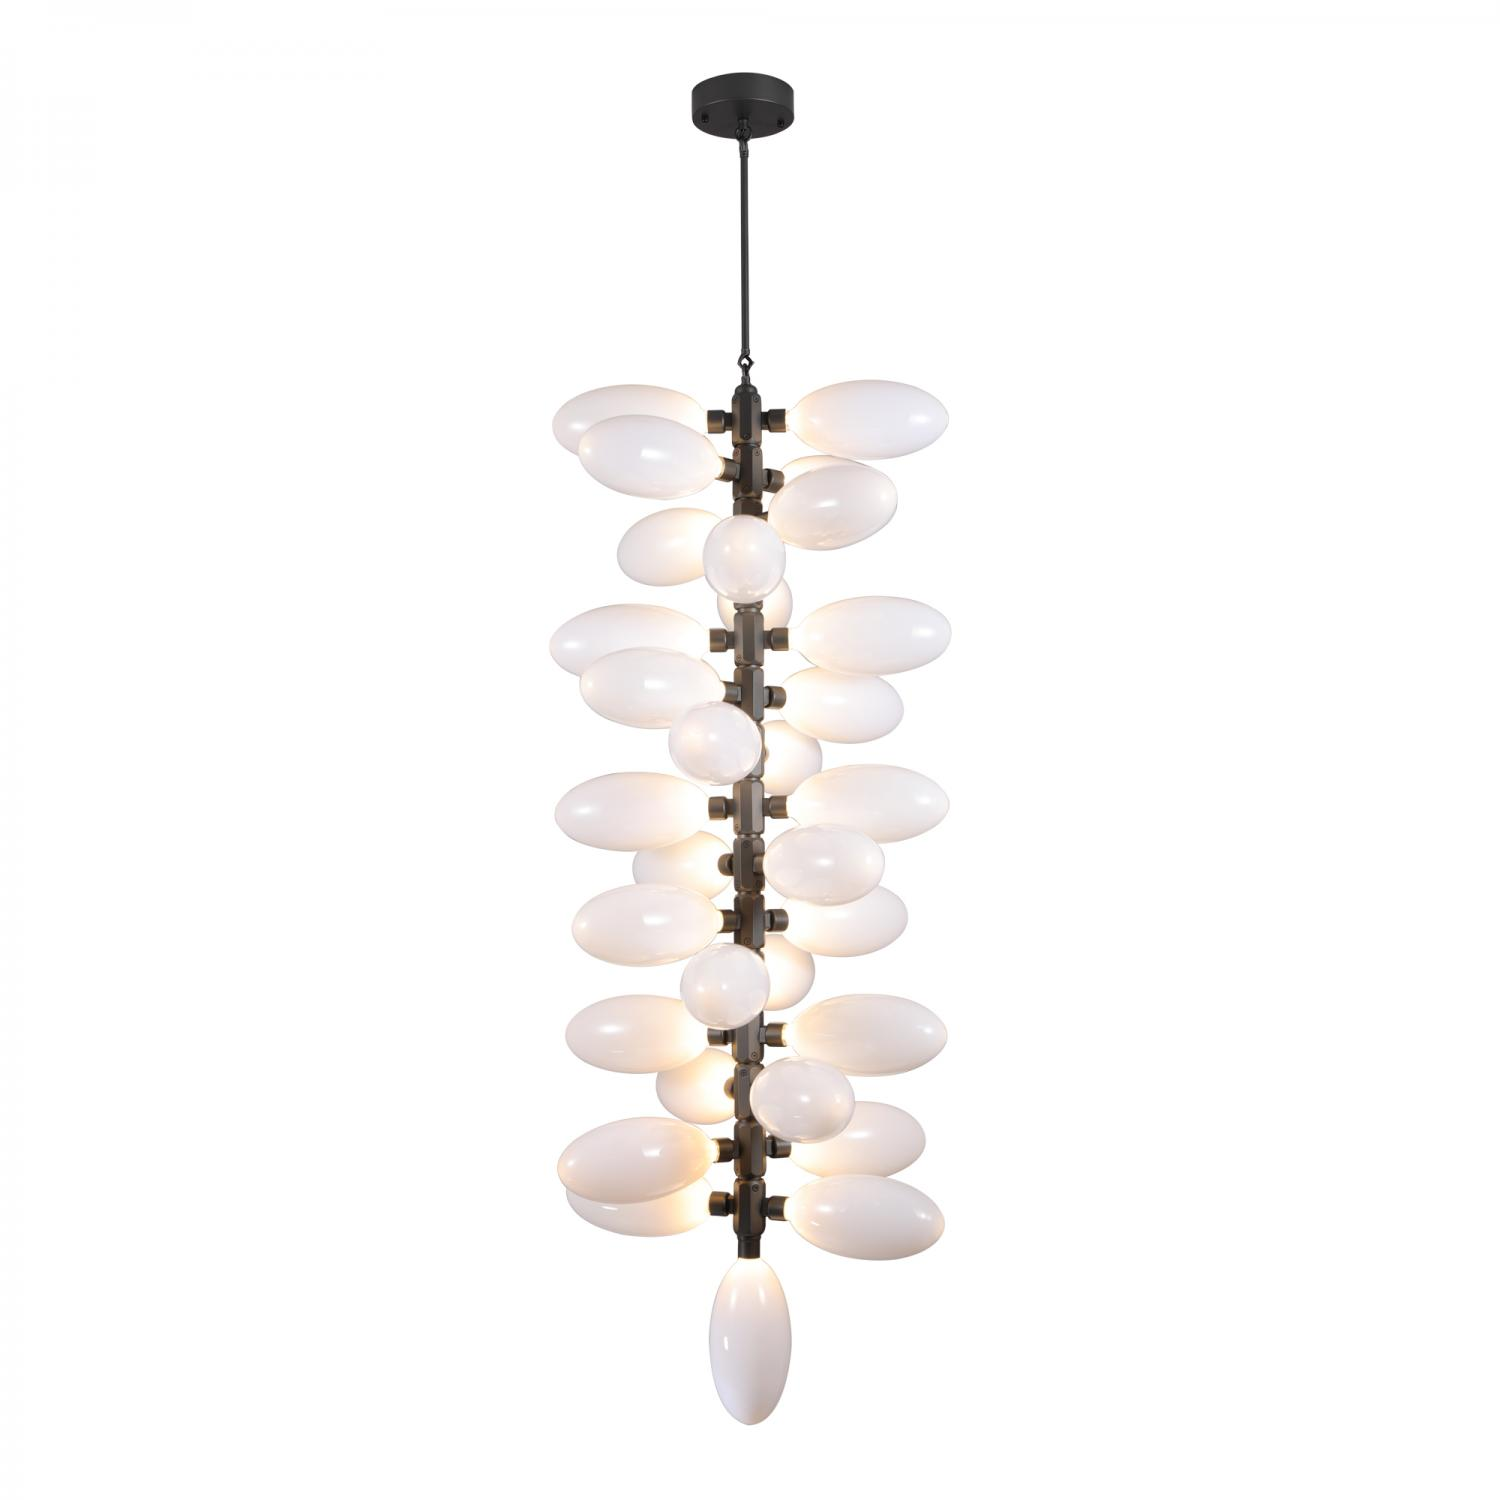 Lindsey Adelman Kingdom Pendant lamp 8535S2-A